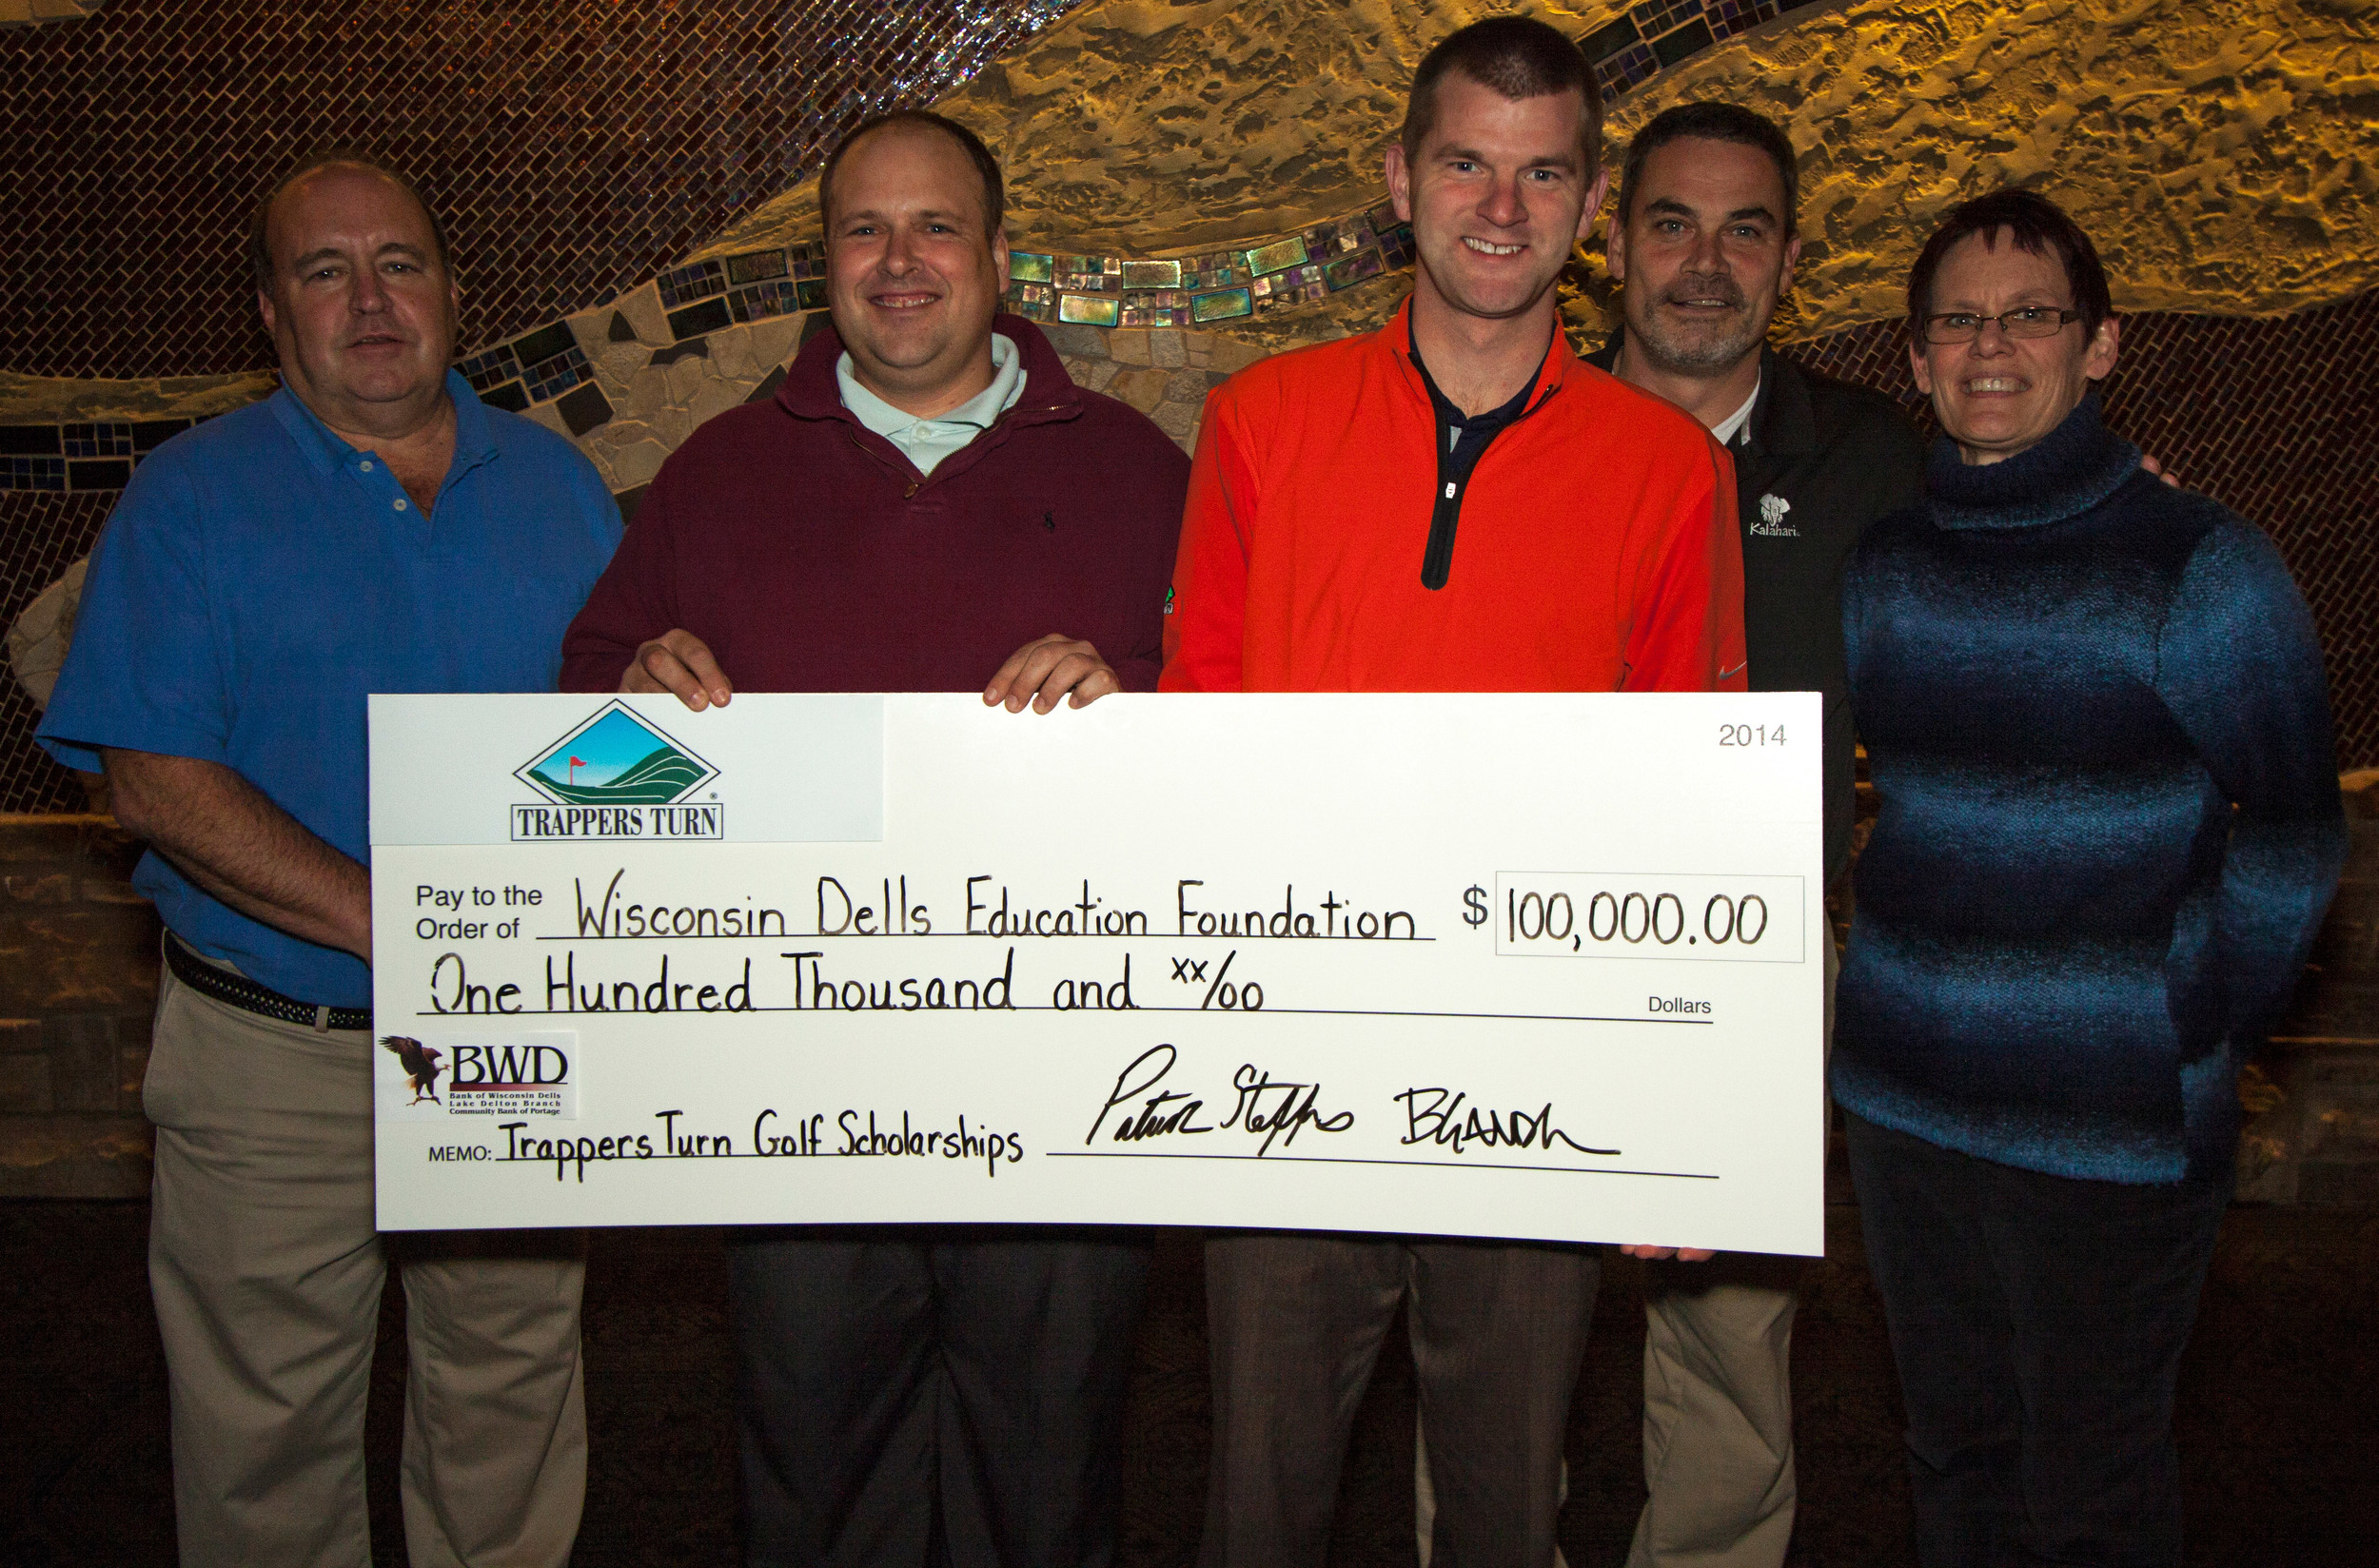 Representing Trappers Turn Golf Club in Wisconsin Dells are Patrick Steffes and Bob Gander presenting a $100,000 check to the Wisconsin Dells Education Foundation. This donation will establish endowment funds for the Girls and Boys Golf Scholarships at Wisconsin Dells High School. A $2,000 scholarship will be award each year to a senior girl and boy on the golf teams. Accepting the donation for the Foundation are board members: Joe Gussel, Todd Nelson, and Marti Fults.